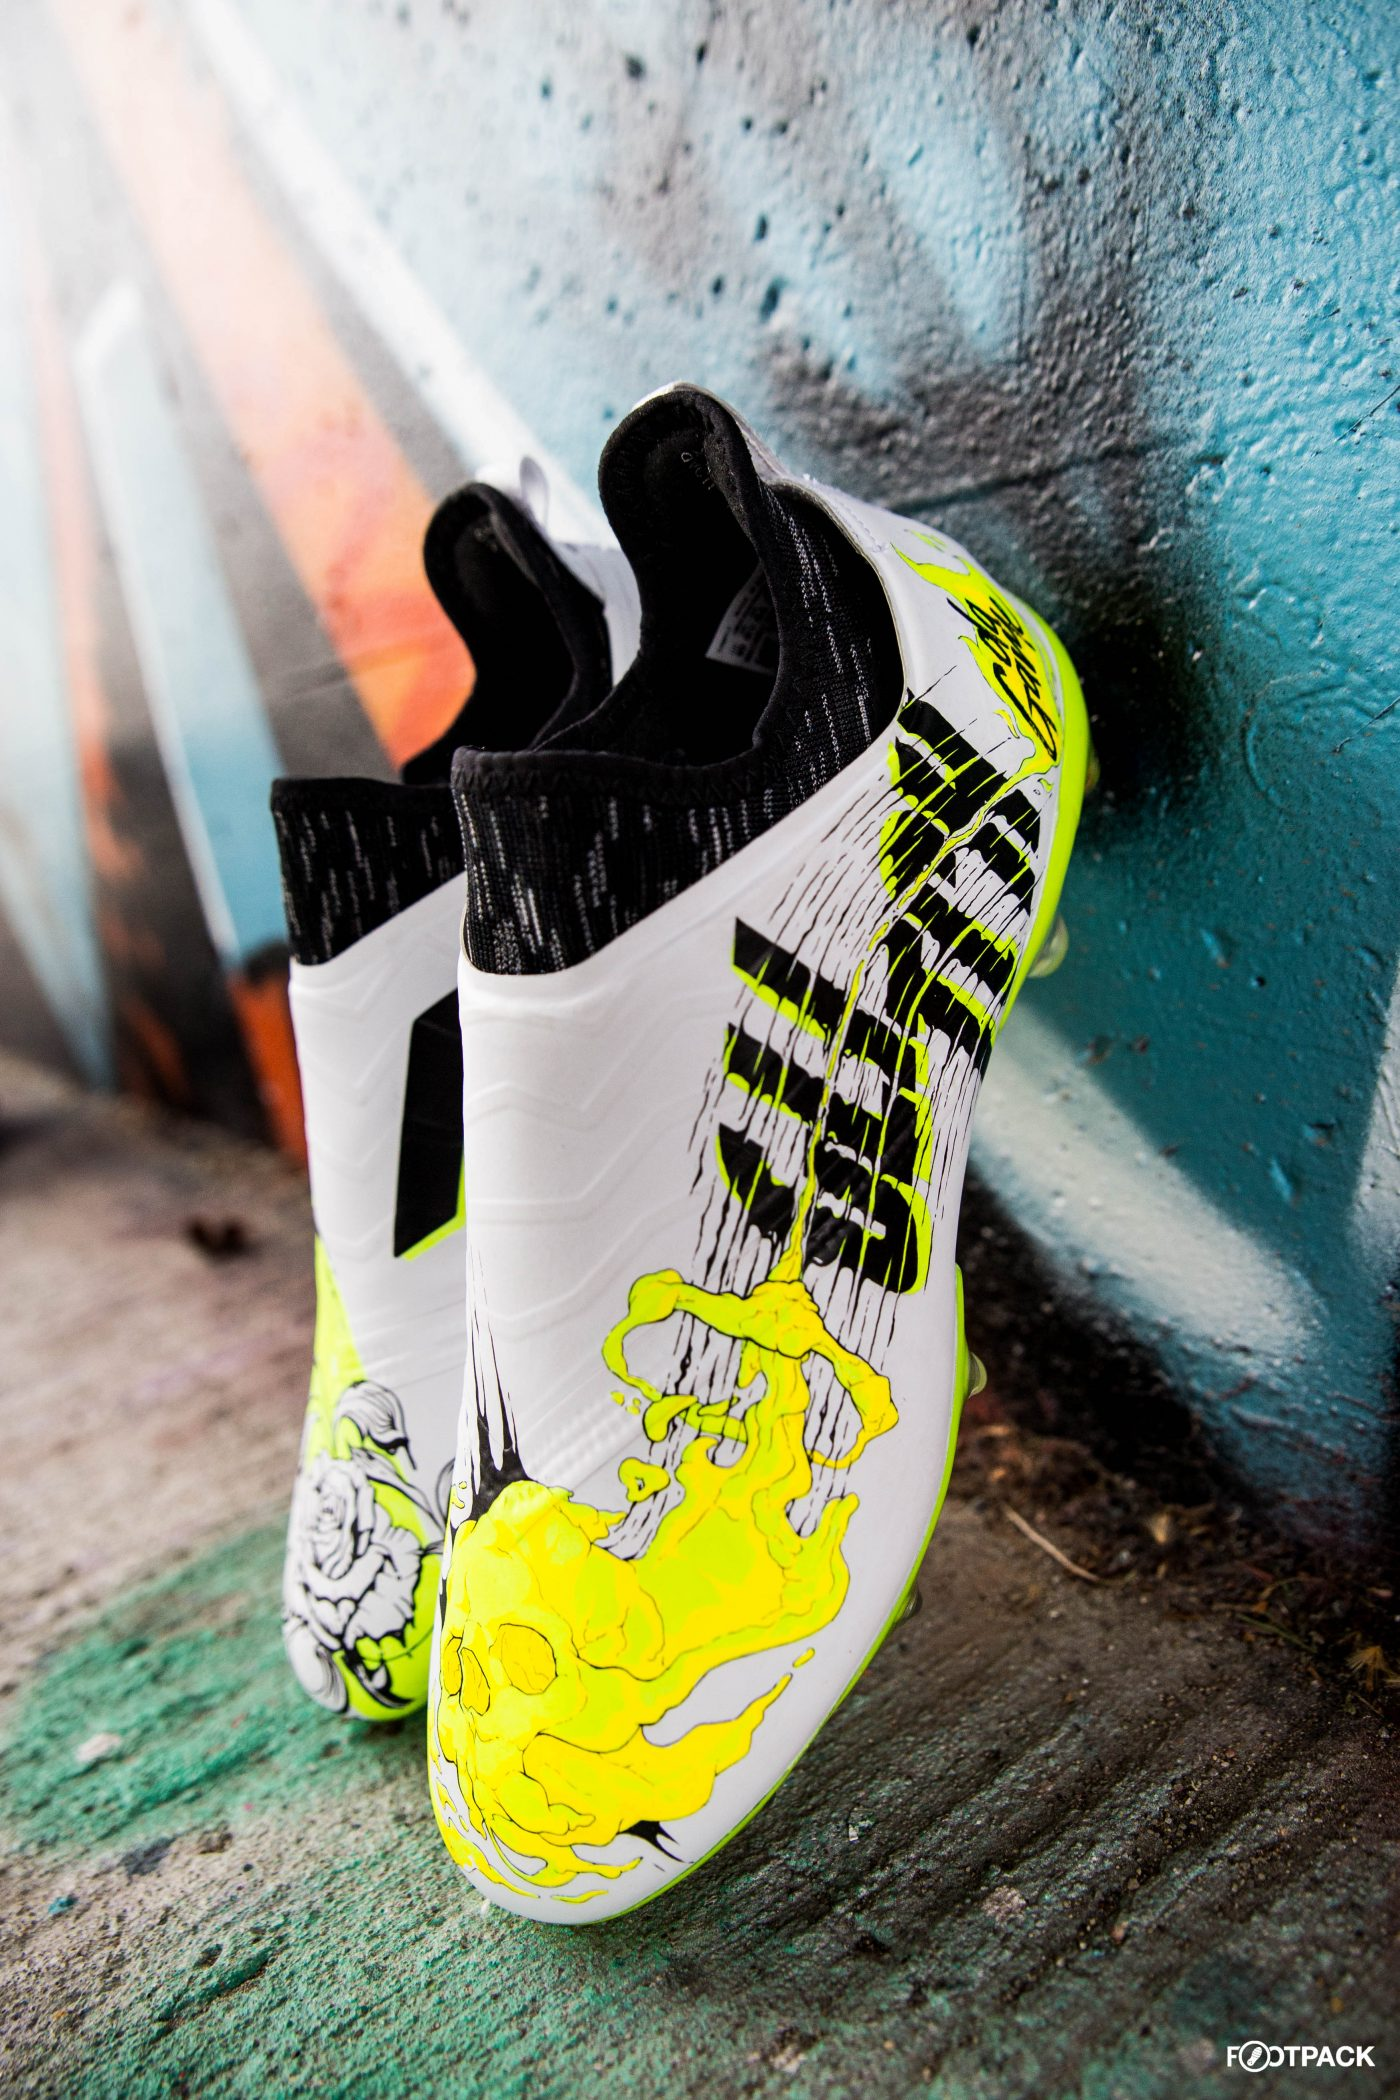 skin-glitch-footpack-adidas-co-creation-20